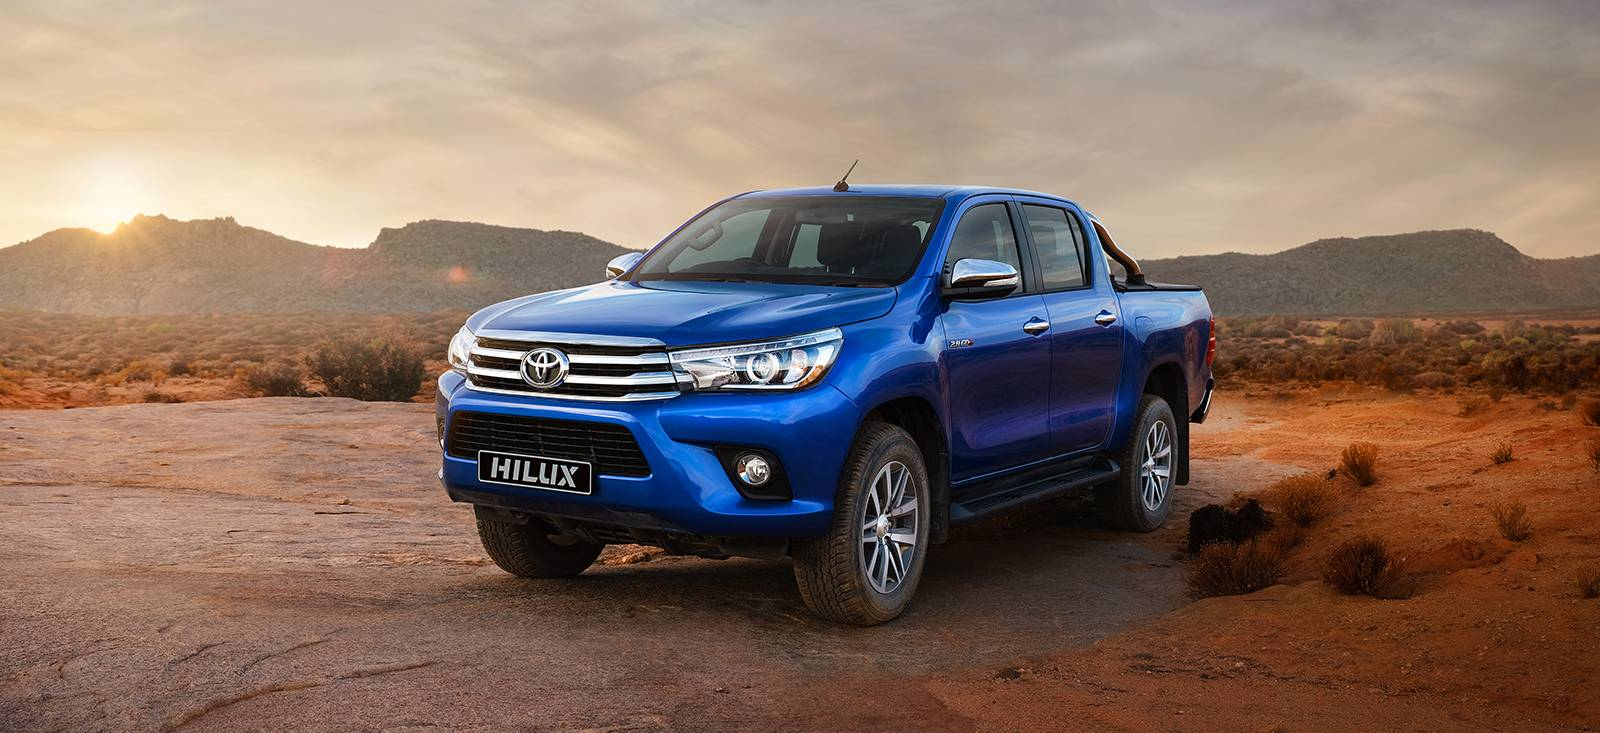 nouveau toyota hilux a uzes etablissements laborie. Black Bedroom Furniture Sets. Home Design Ideas